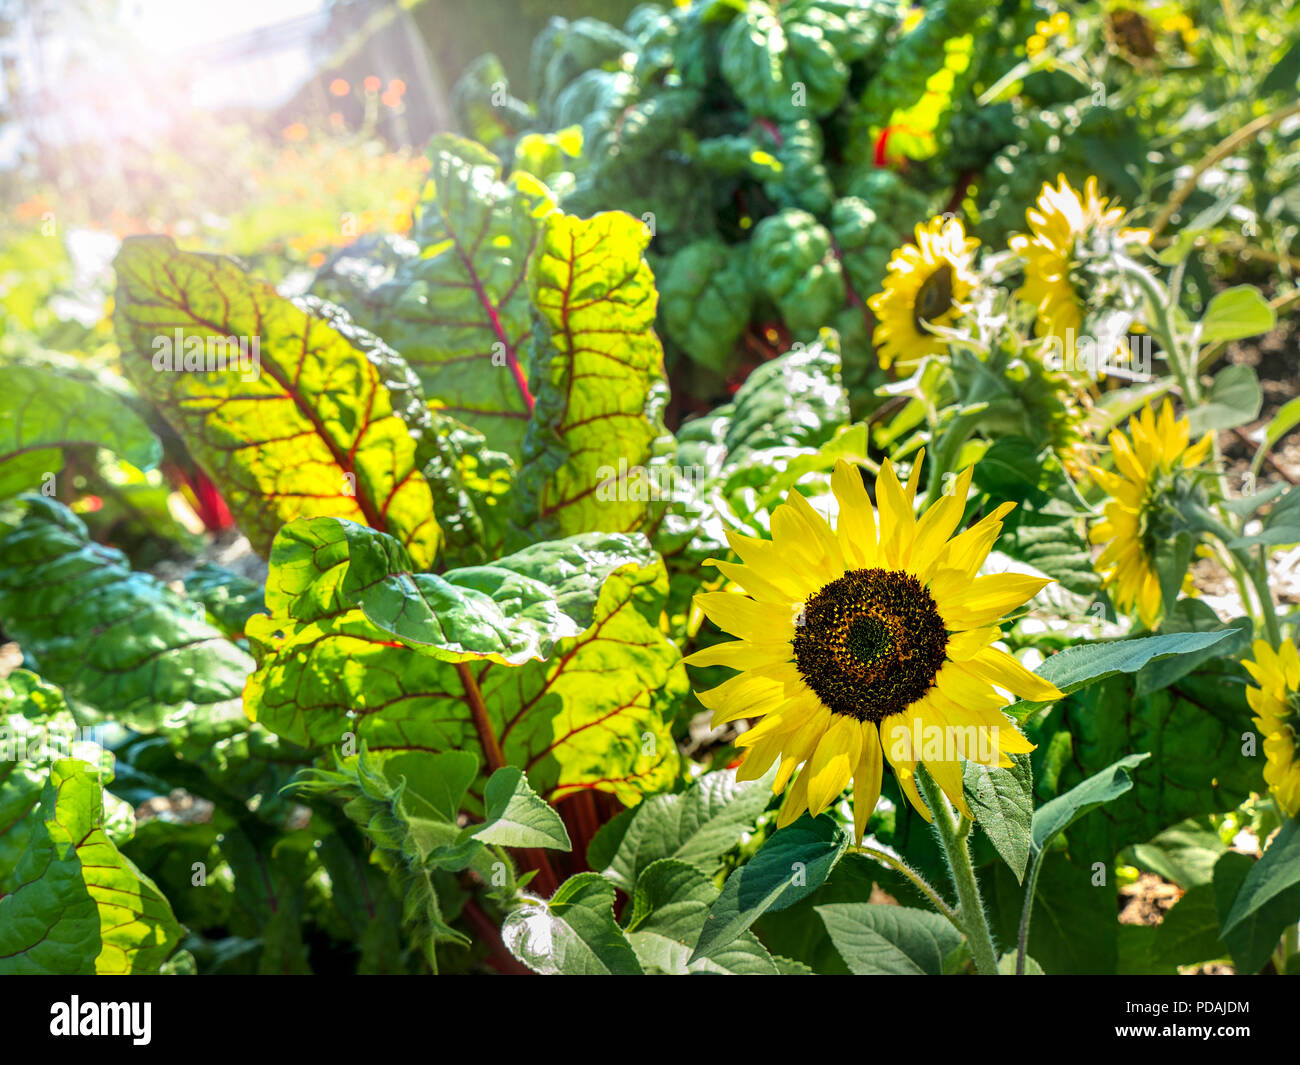 RHUBARB CHARD Organic thriving sunny vegetable garden with leaf beet / Beta vulgaris subsp. cicla var. flavescens 'Rhubarb leaf beet with sunflowers - Stock Image